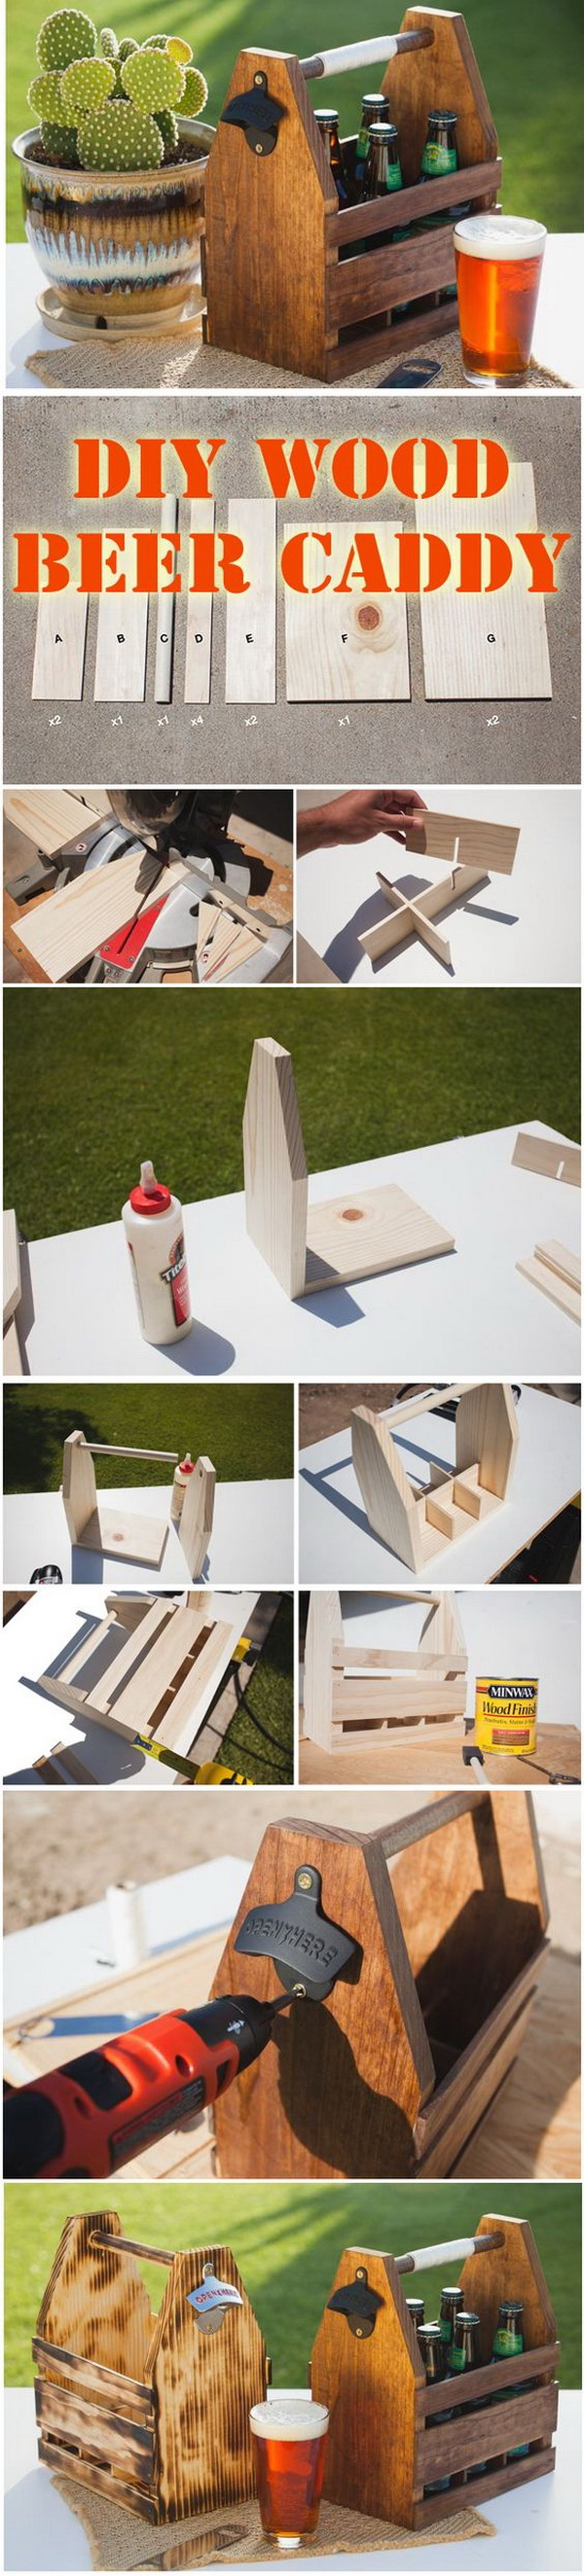 DIY Wood Beer Caddy. Make a beer caddy for summer bbqs for your own or a personalized gift for your dad!